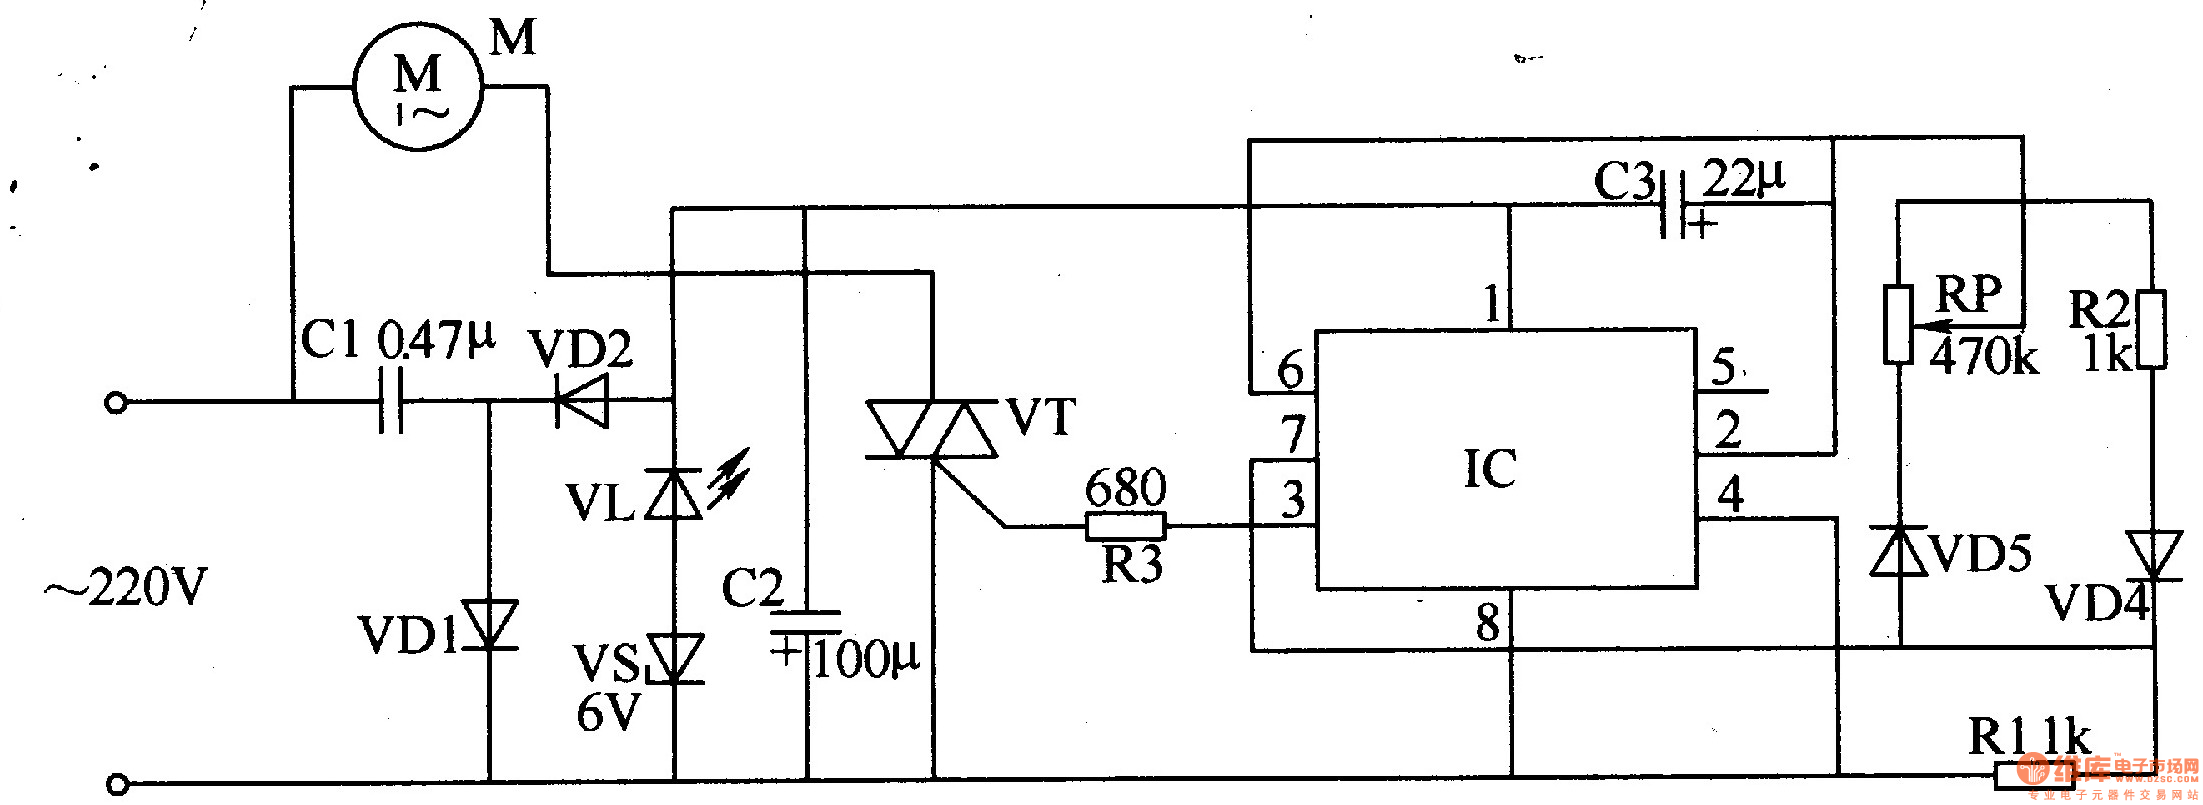 Fan Speed Controller Diagram 1 Automatic Control Circuit Basictriacswitches Controlcircuit Seekiccom